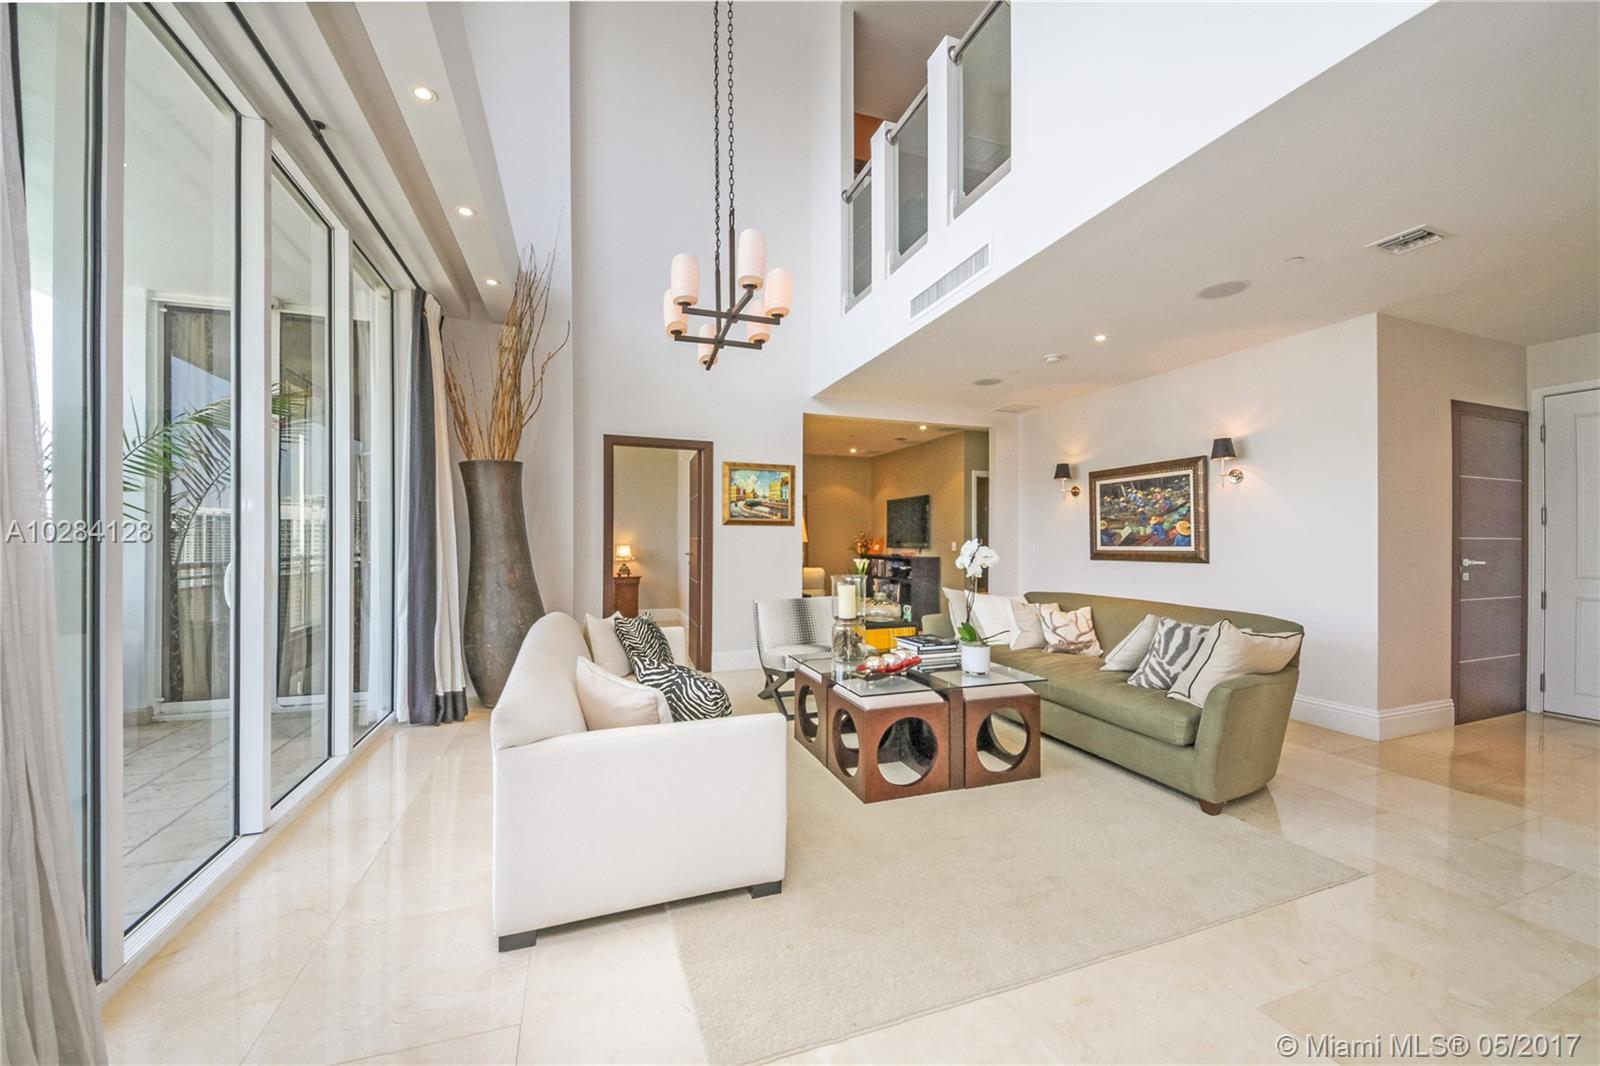 901 Brickell key blvd-PH3705 miami--fl-33131-a10284128-Pic17